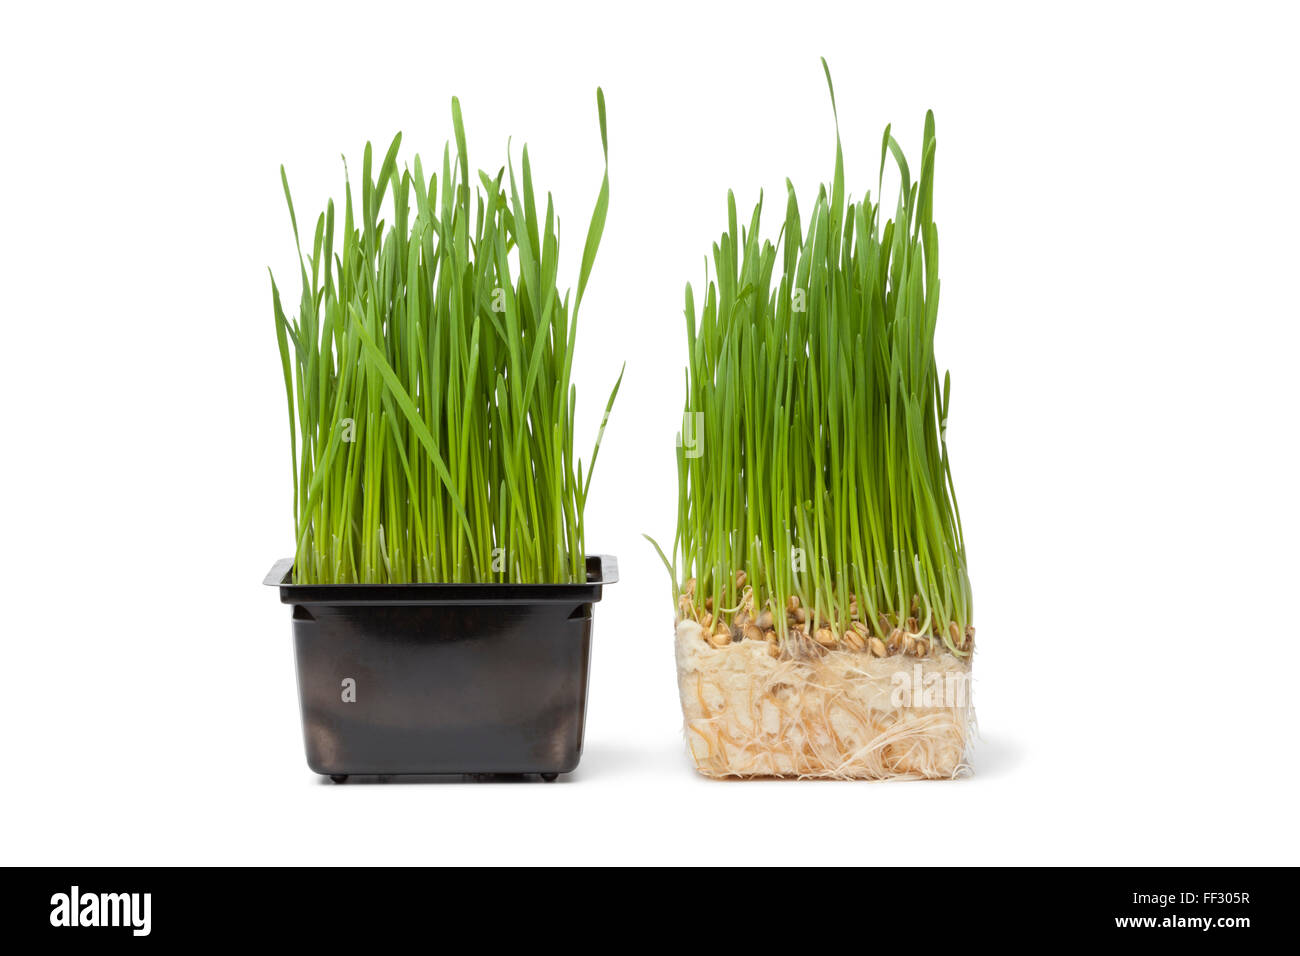 Organic wheat grass in plastic container on white background - Stock Image